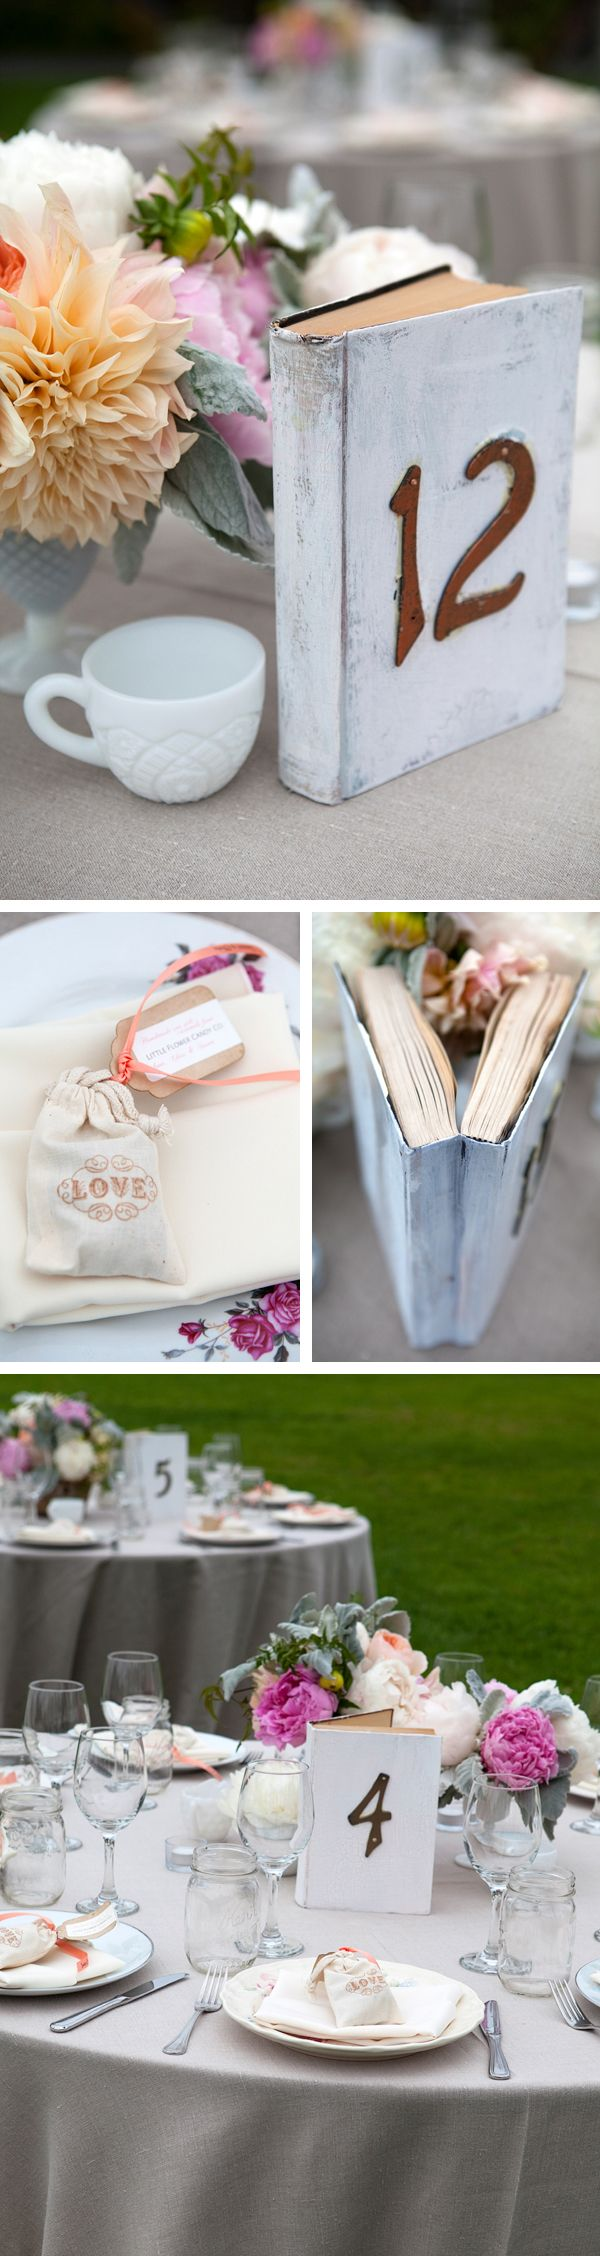 DIY | Book Table numbers :: http://studioelevenweddings.com/